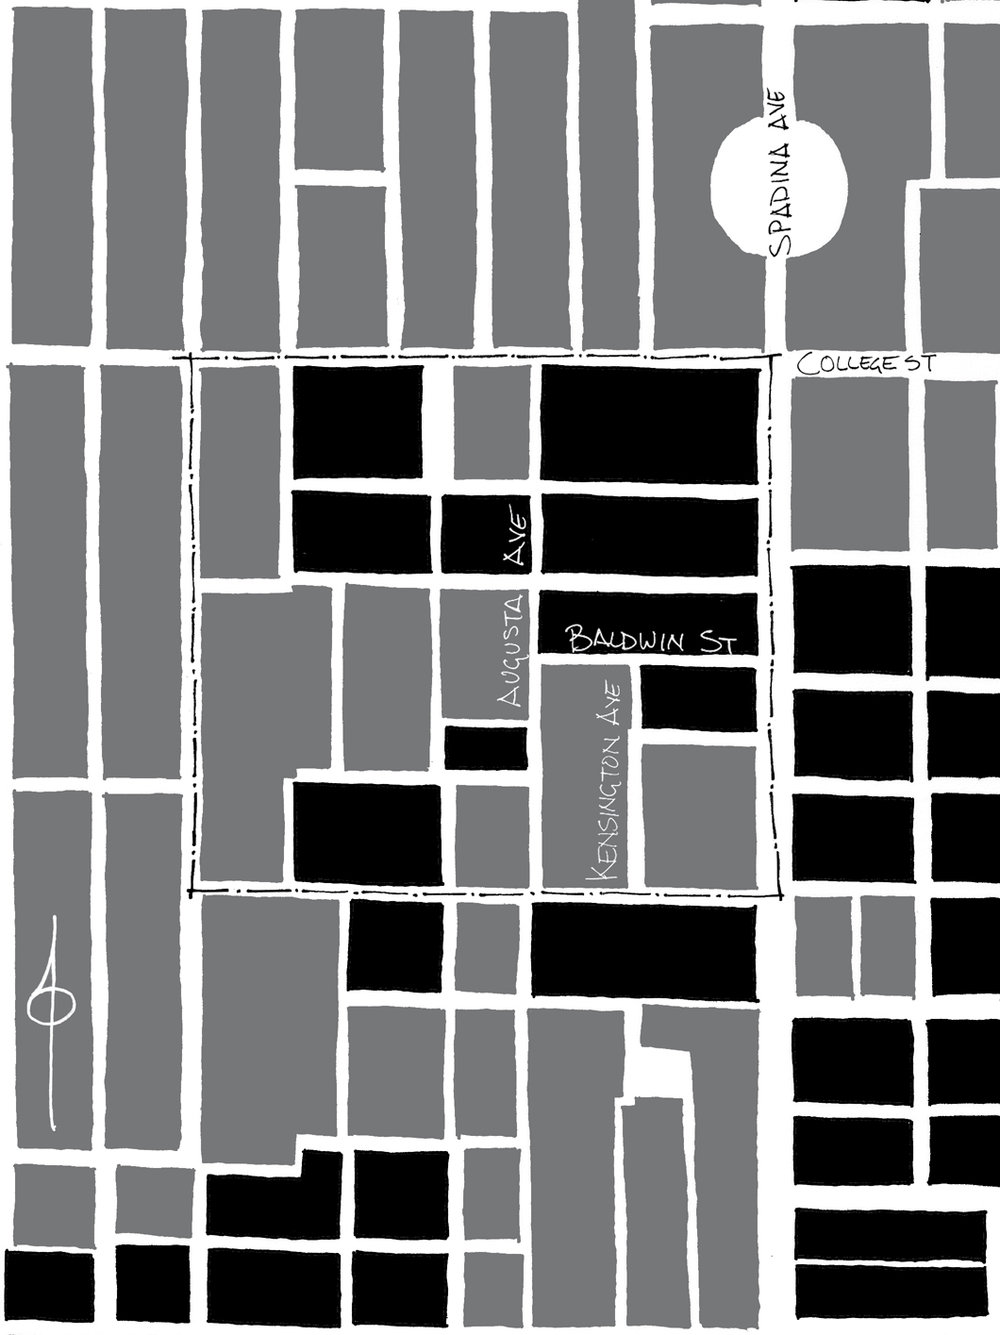 Figure 1: Plan showing the street and block patters of the Kensington Market neighbourhood (outlined) and surrounding area as laid out in 1924. The east-west blocks (black) are typical of earlier subdivisions, while the taller blocks (grey) represent later trends. Kensington Market lies at a point of confluence, containing an equal number of each.